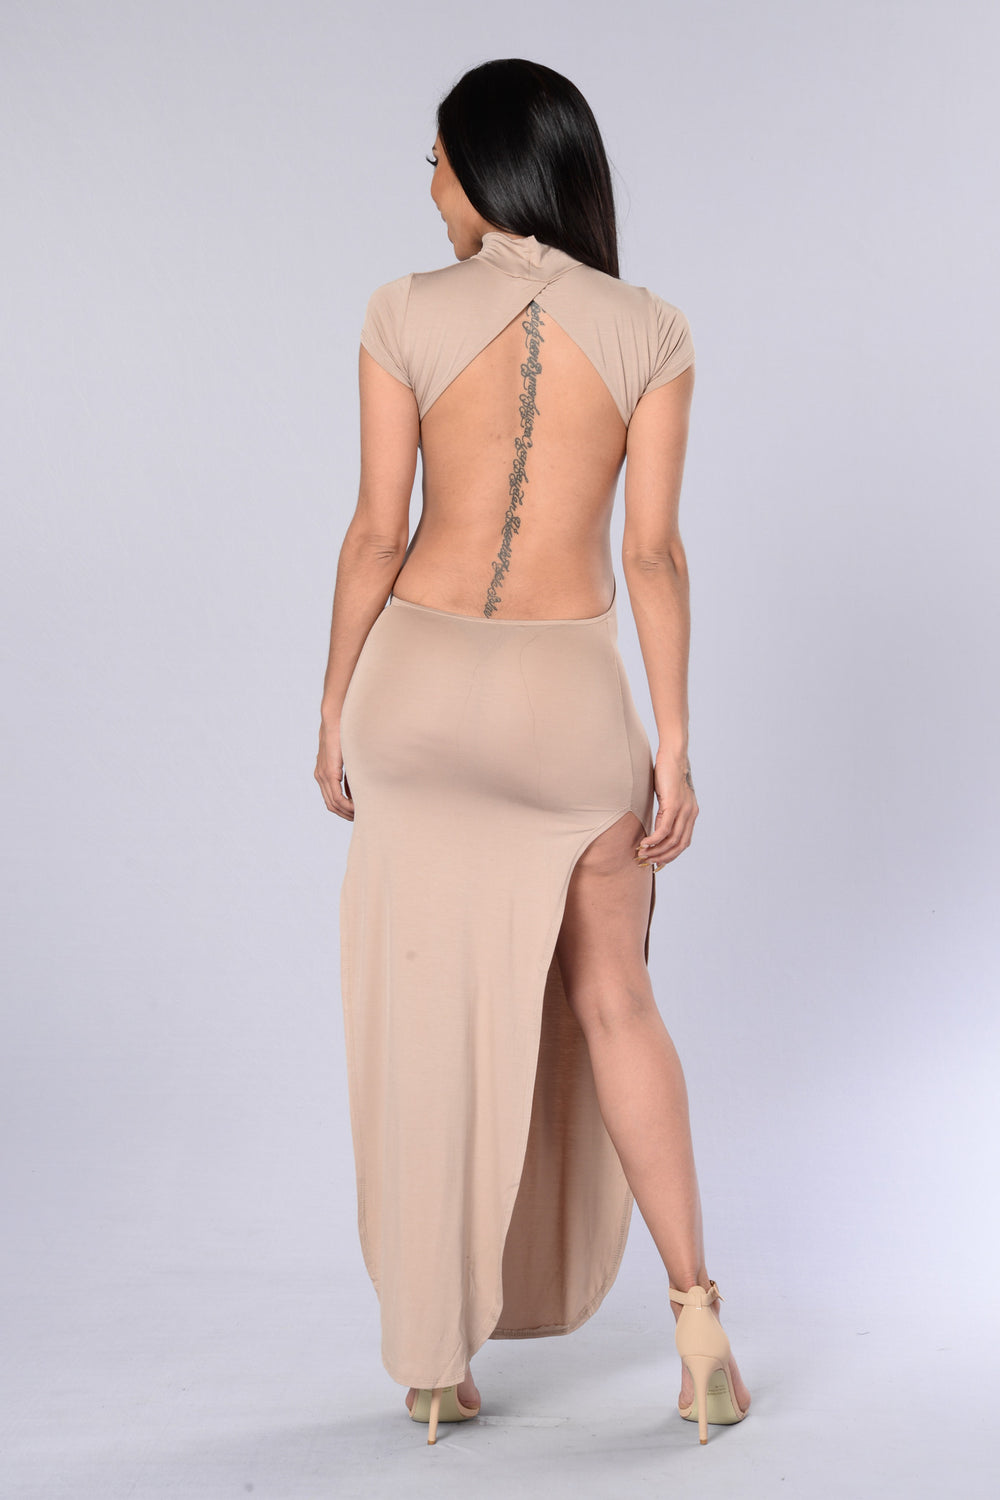 Aphrodisiac Dress - Taupe